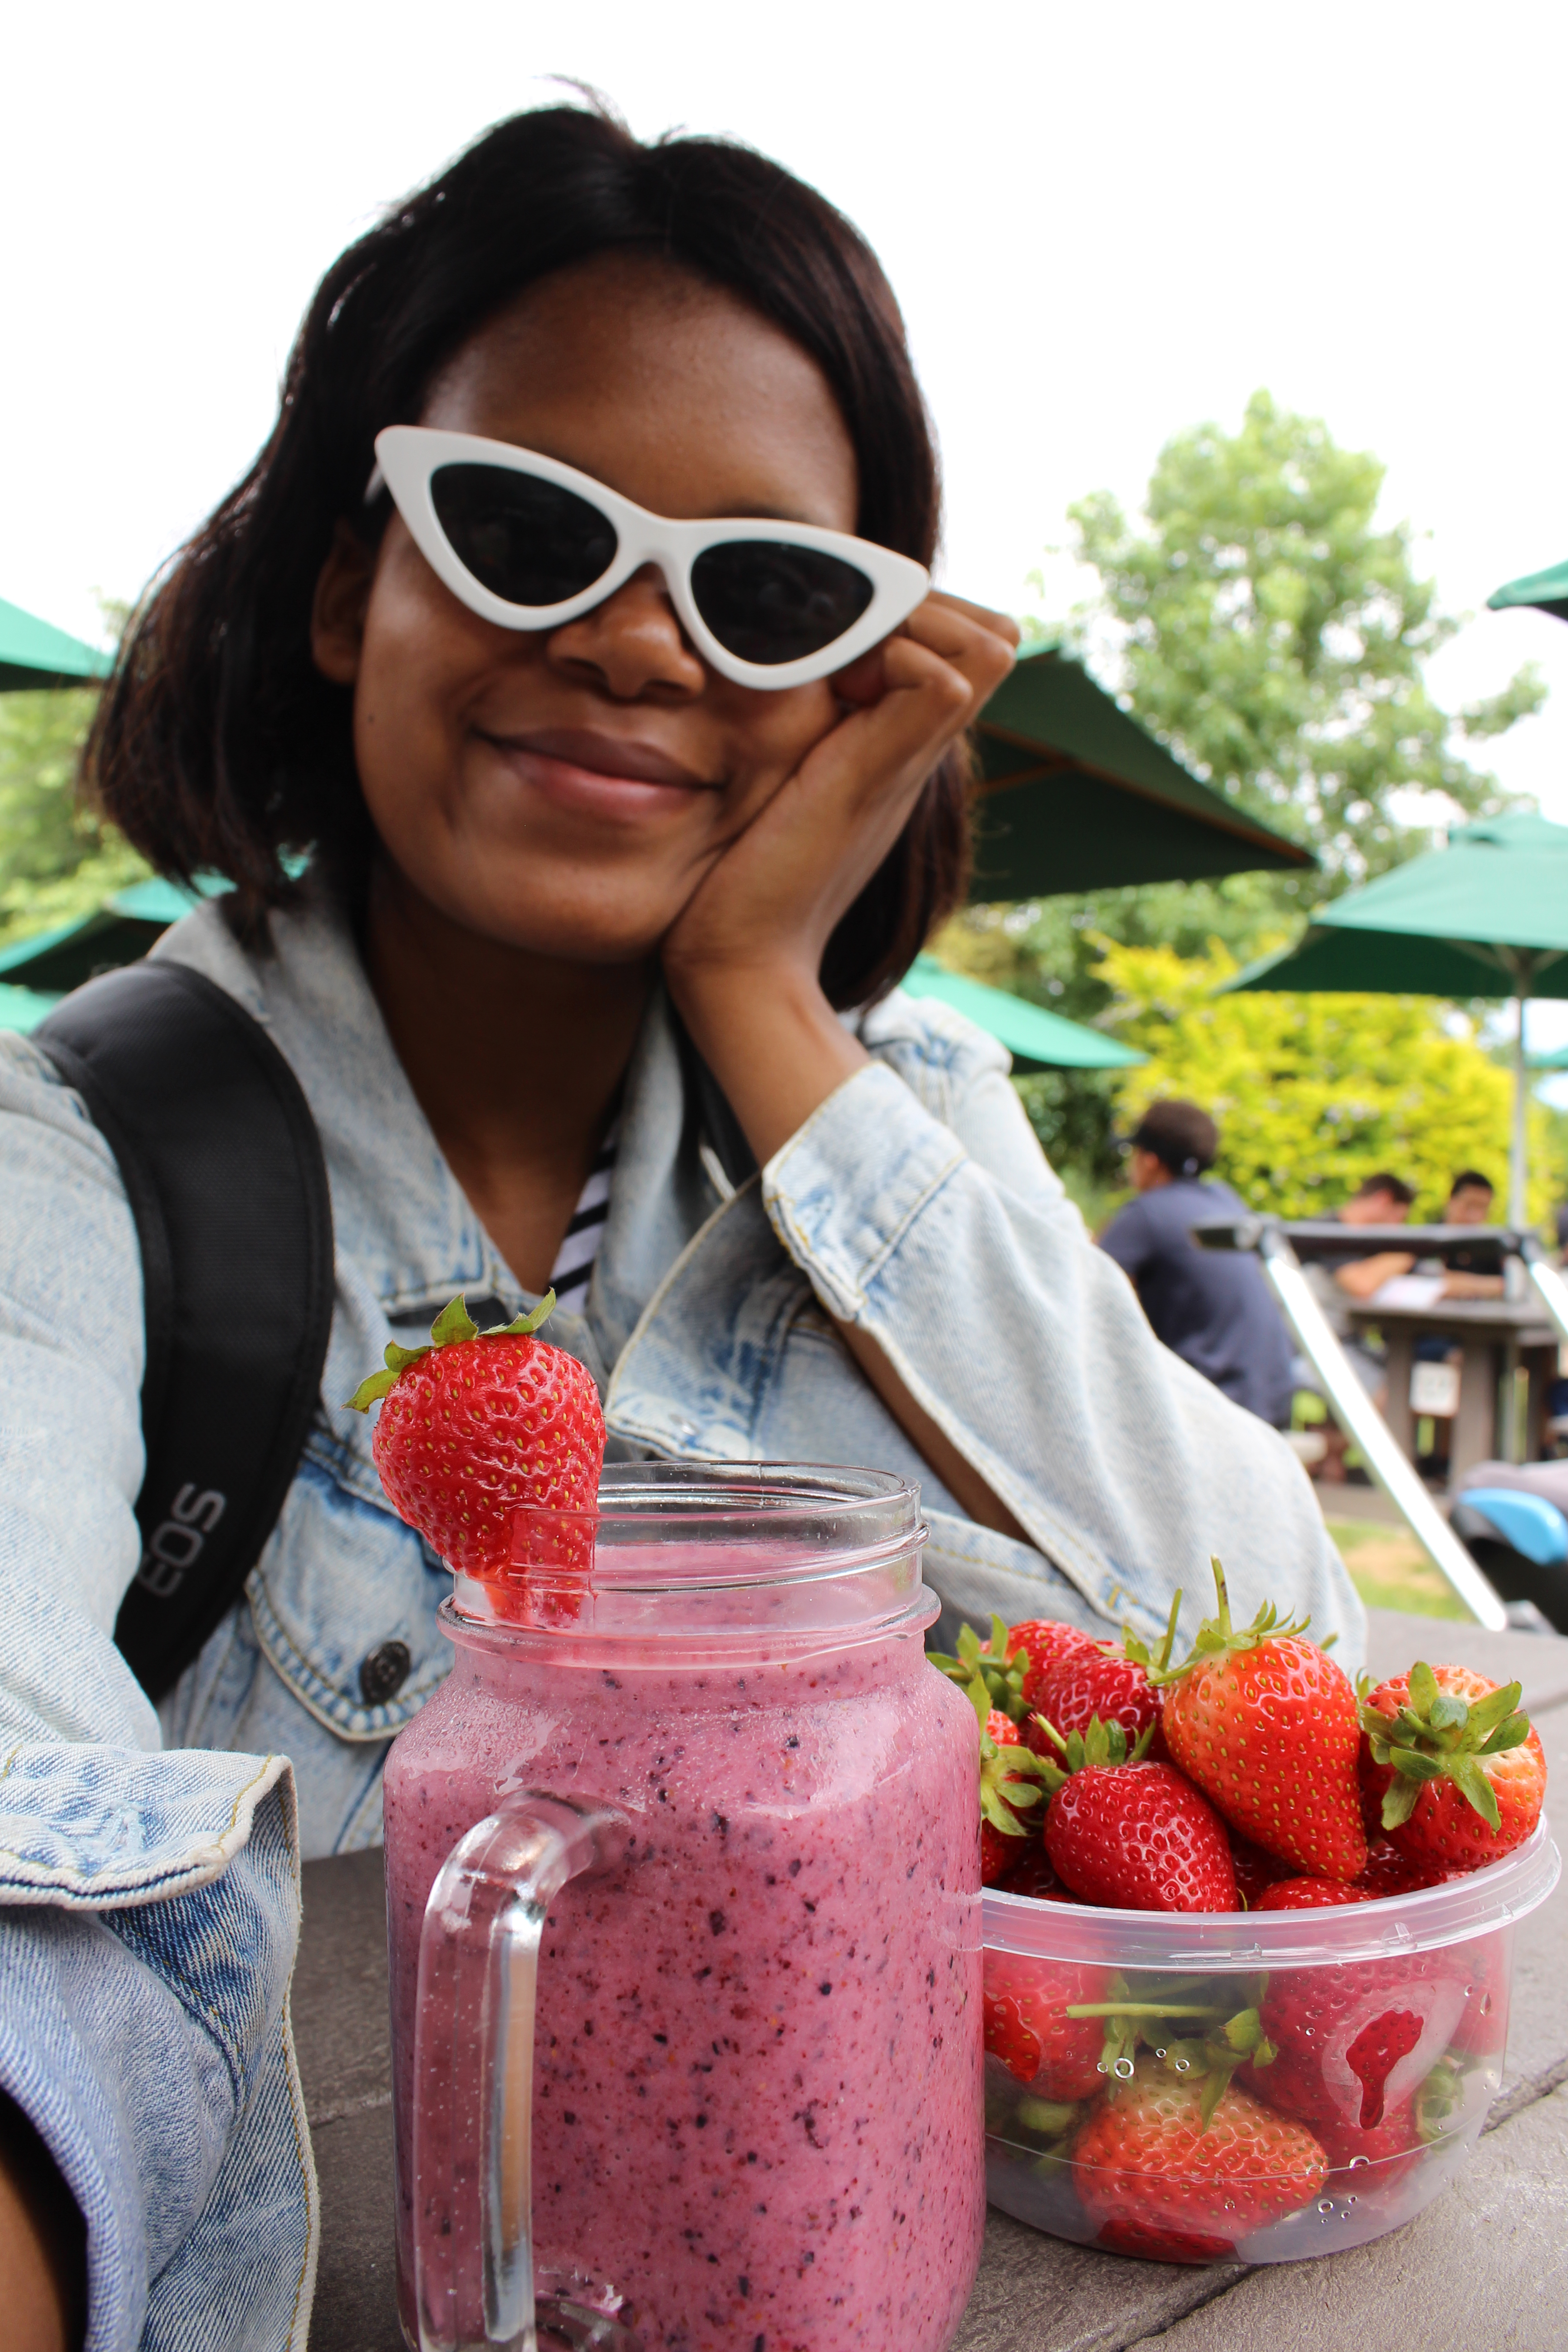 girl wearing sunglasses with strawberries and smoothie